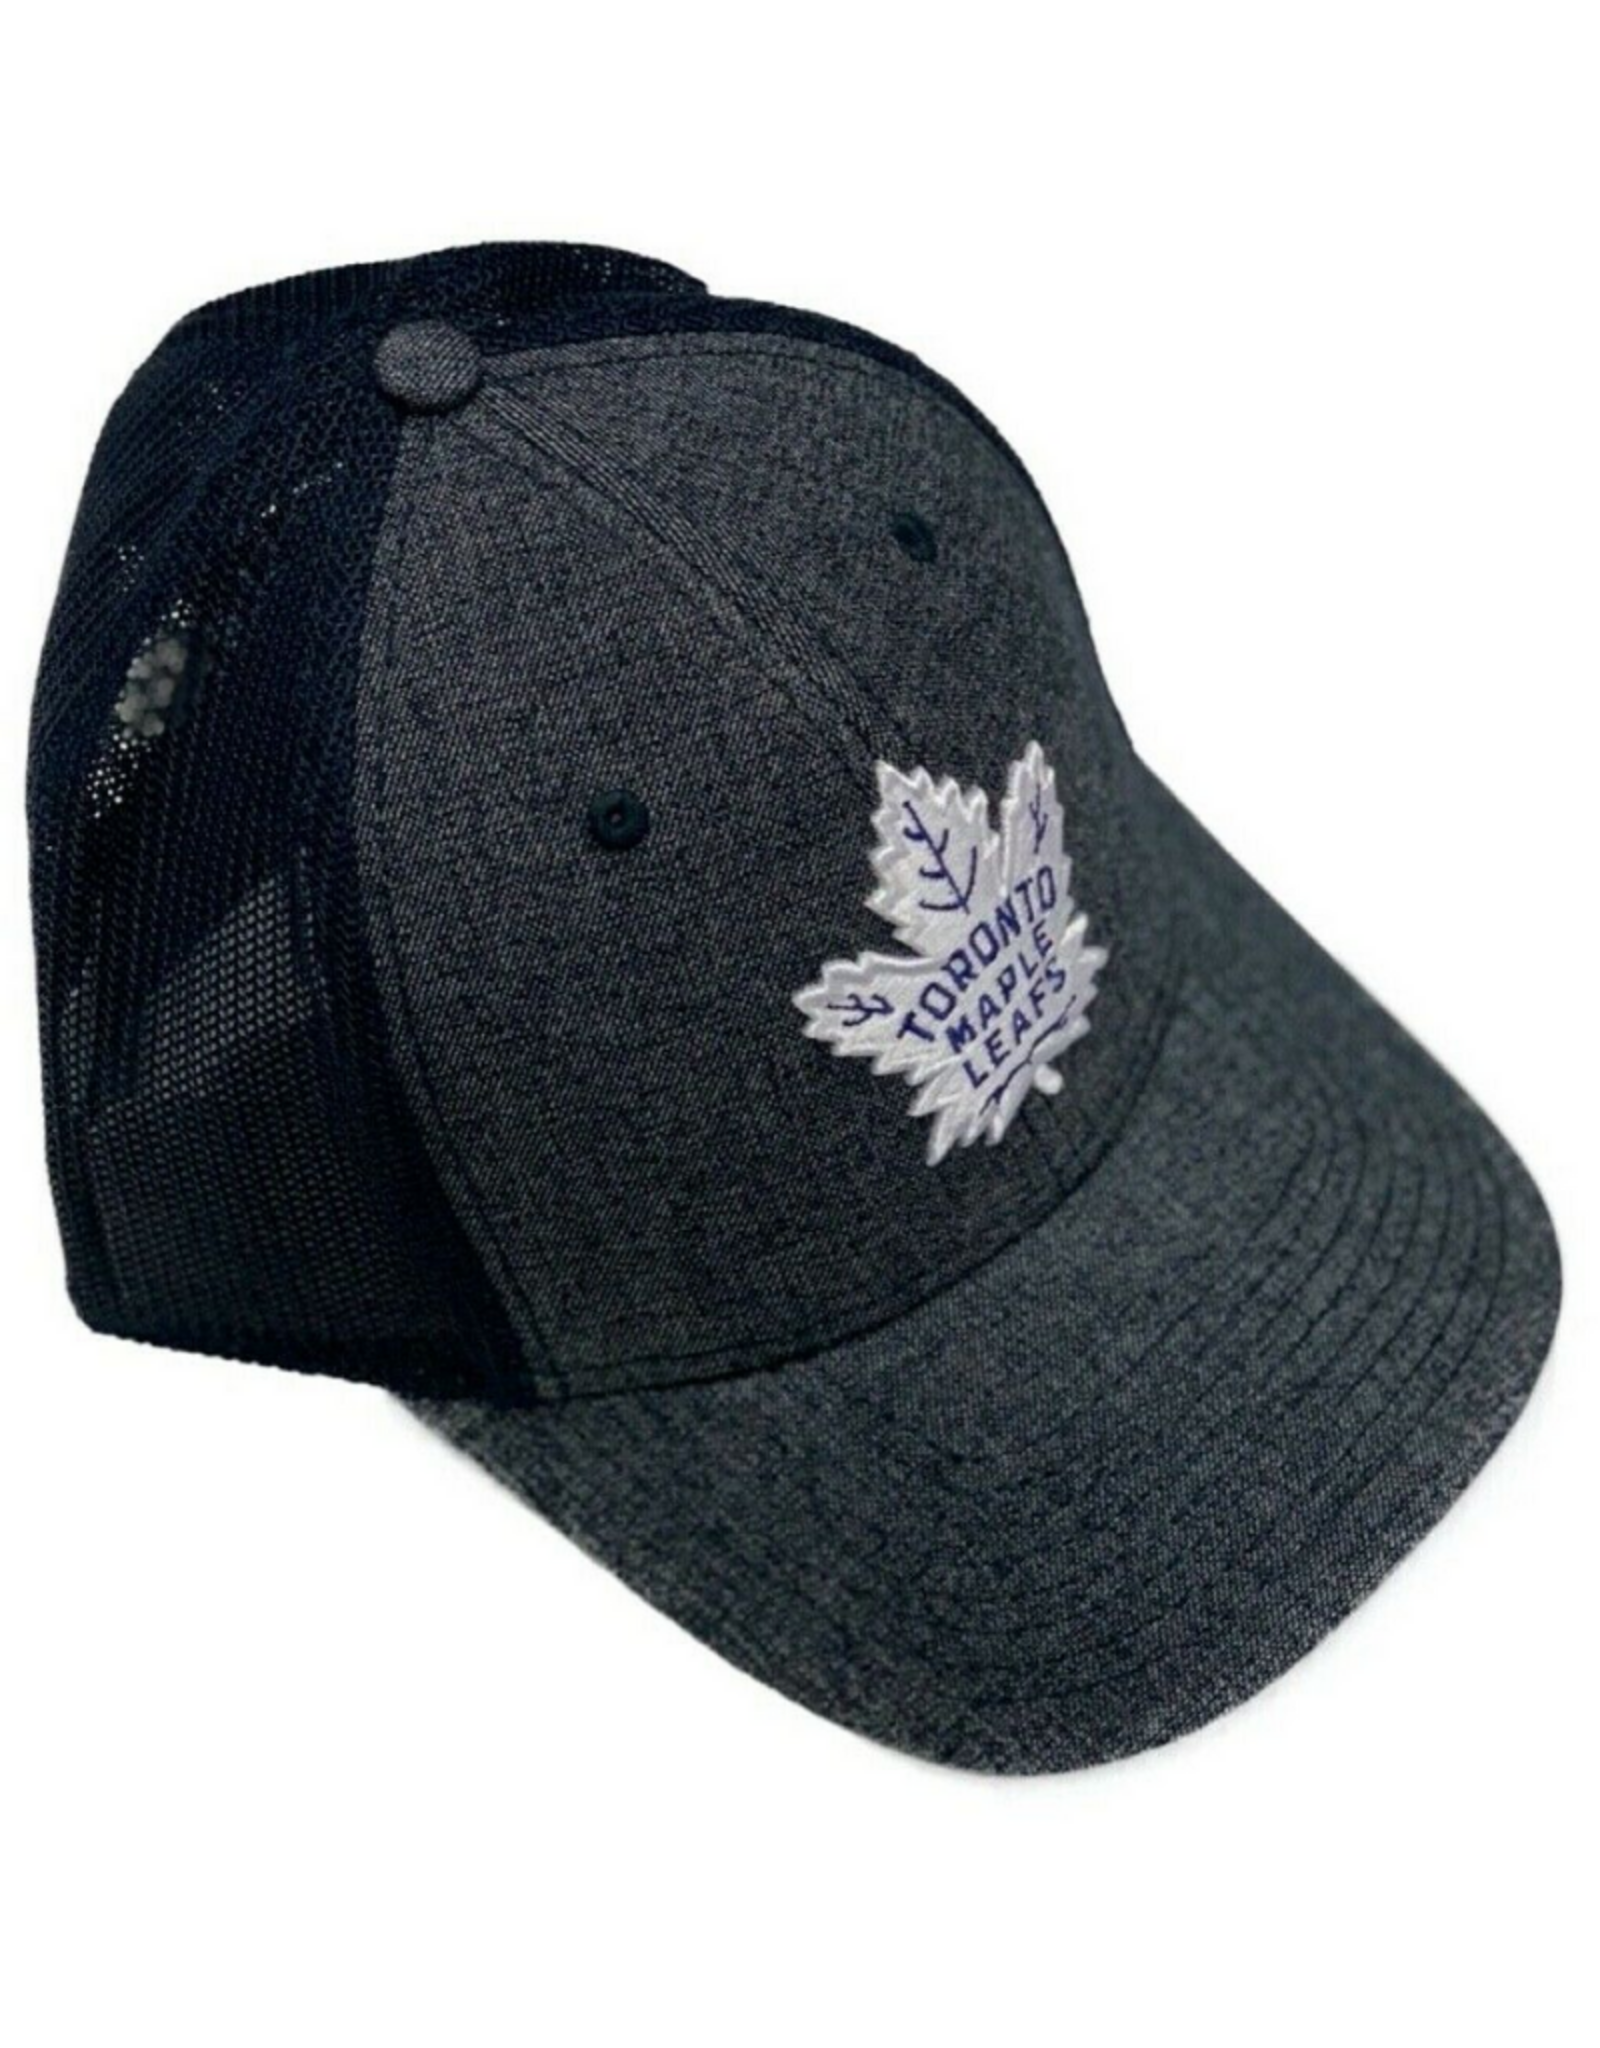 American Needle American Needle Men's Heathered Poly Stretch Hat Toronto Maple Leafs Navy